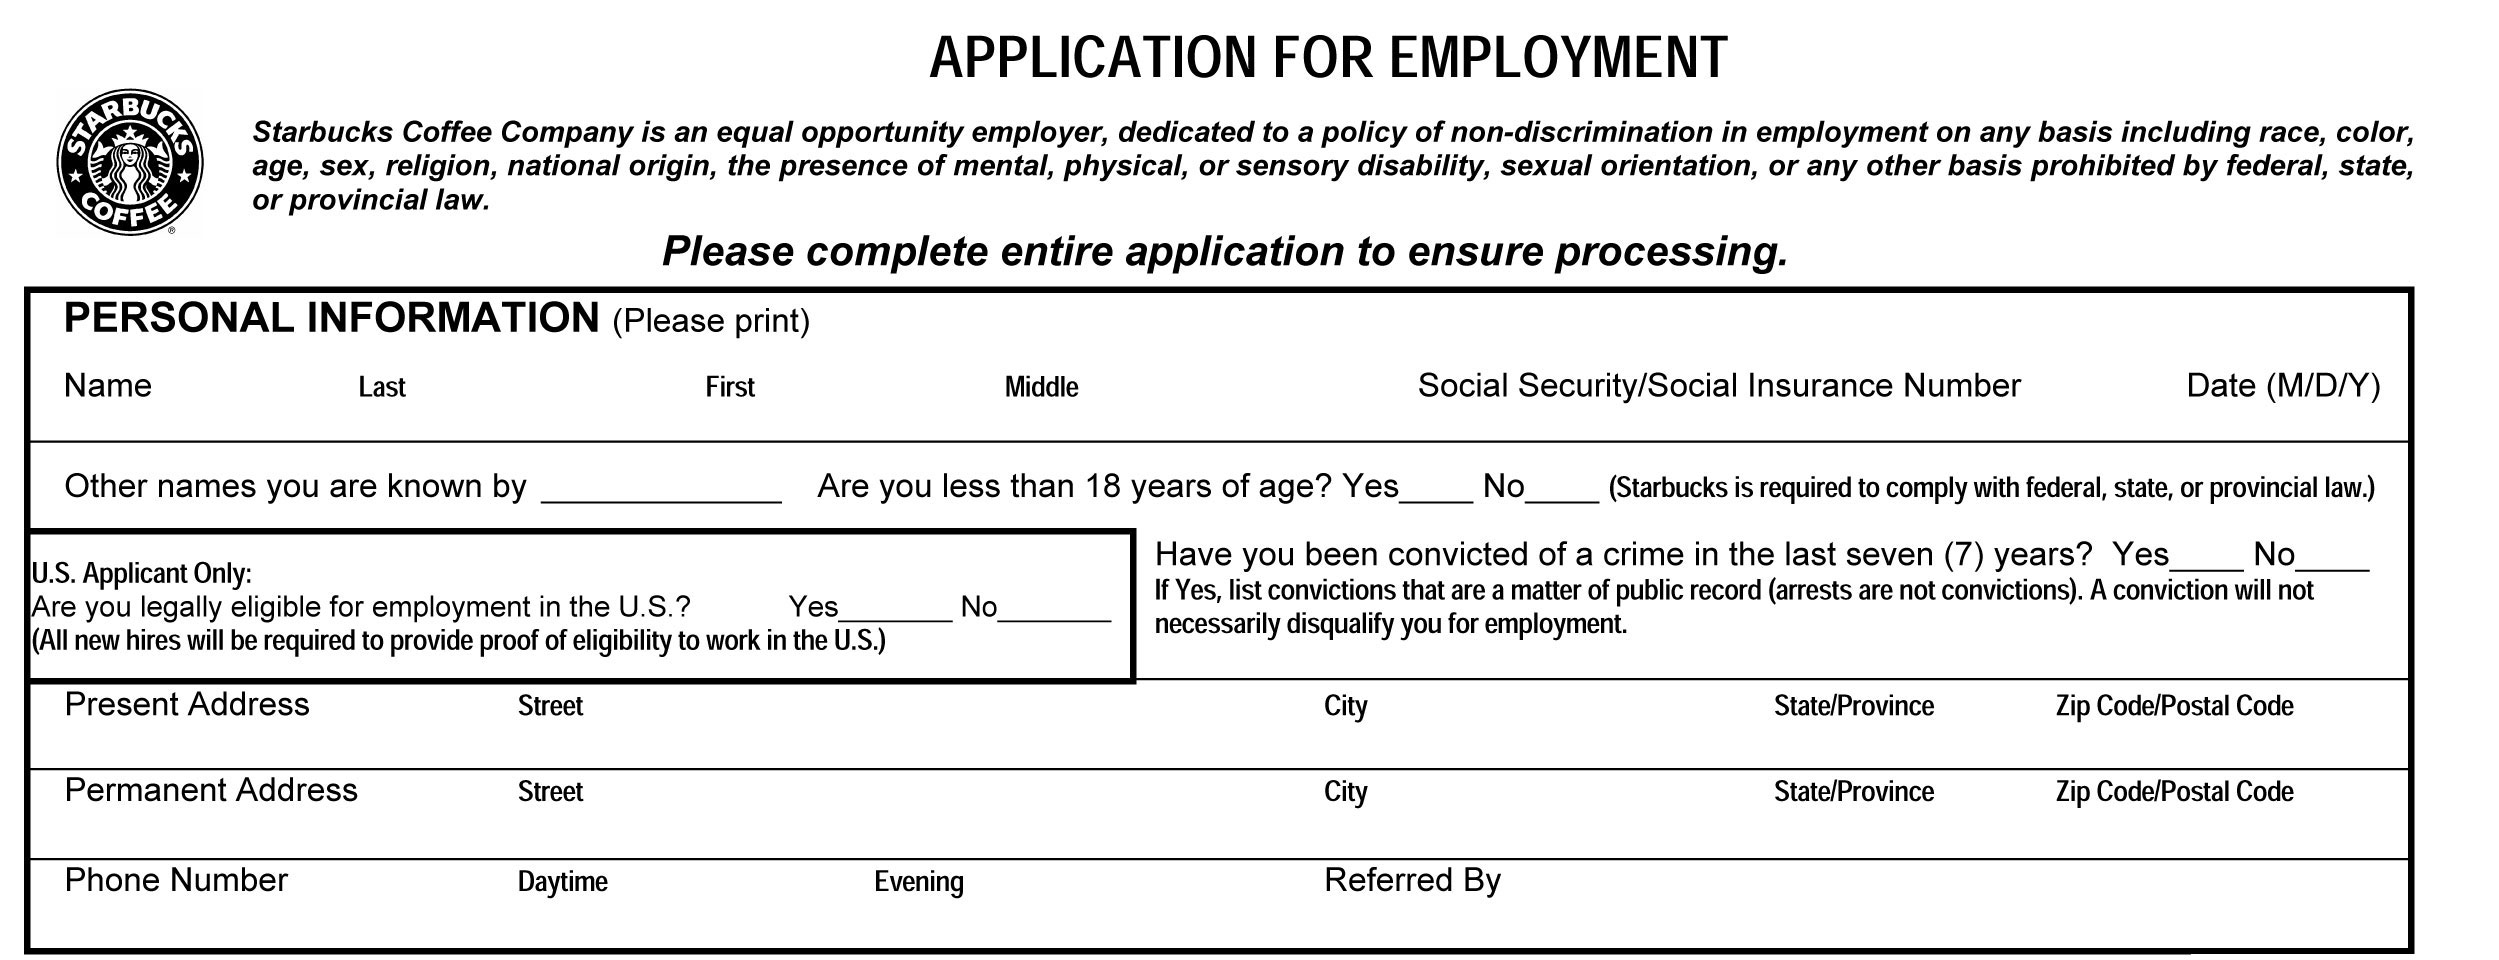 Starbucks Job Application Form Online: Apply for Jobs at Starbucks Here